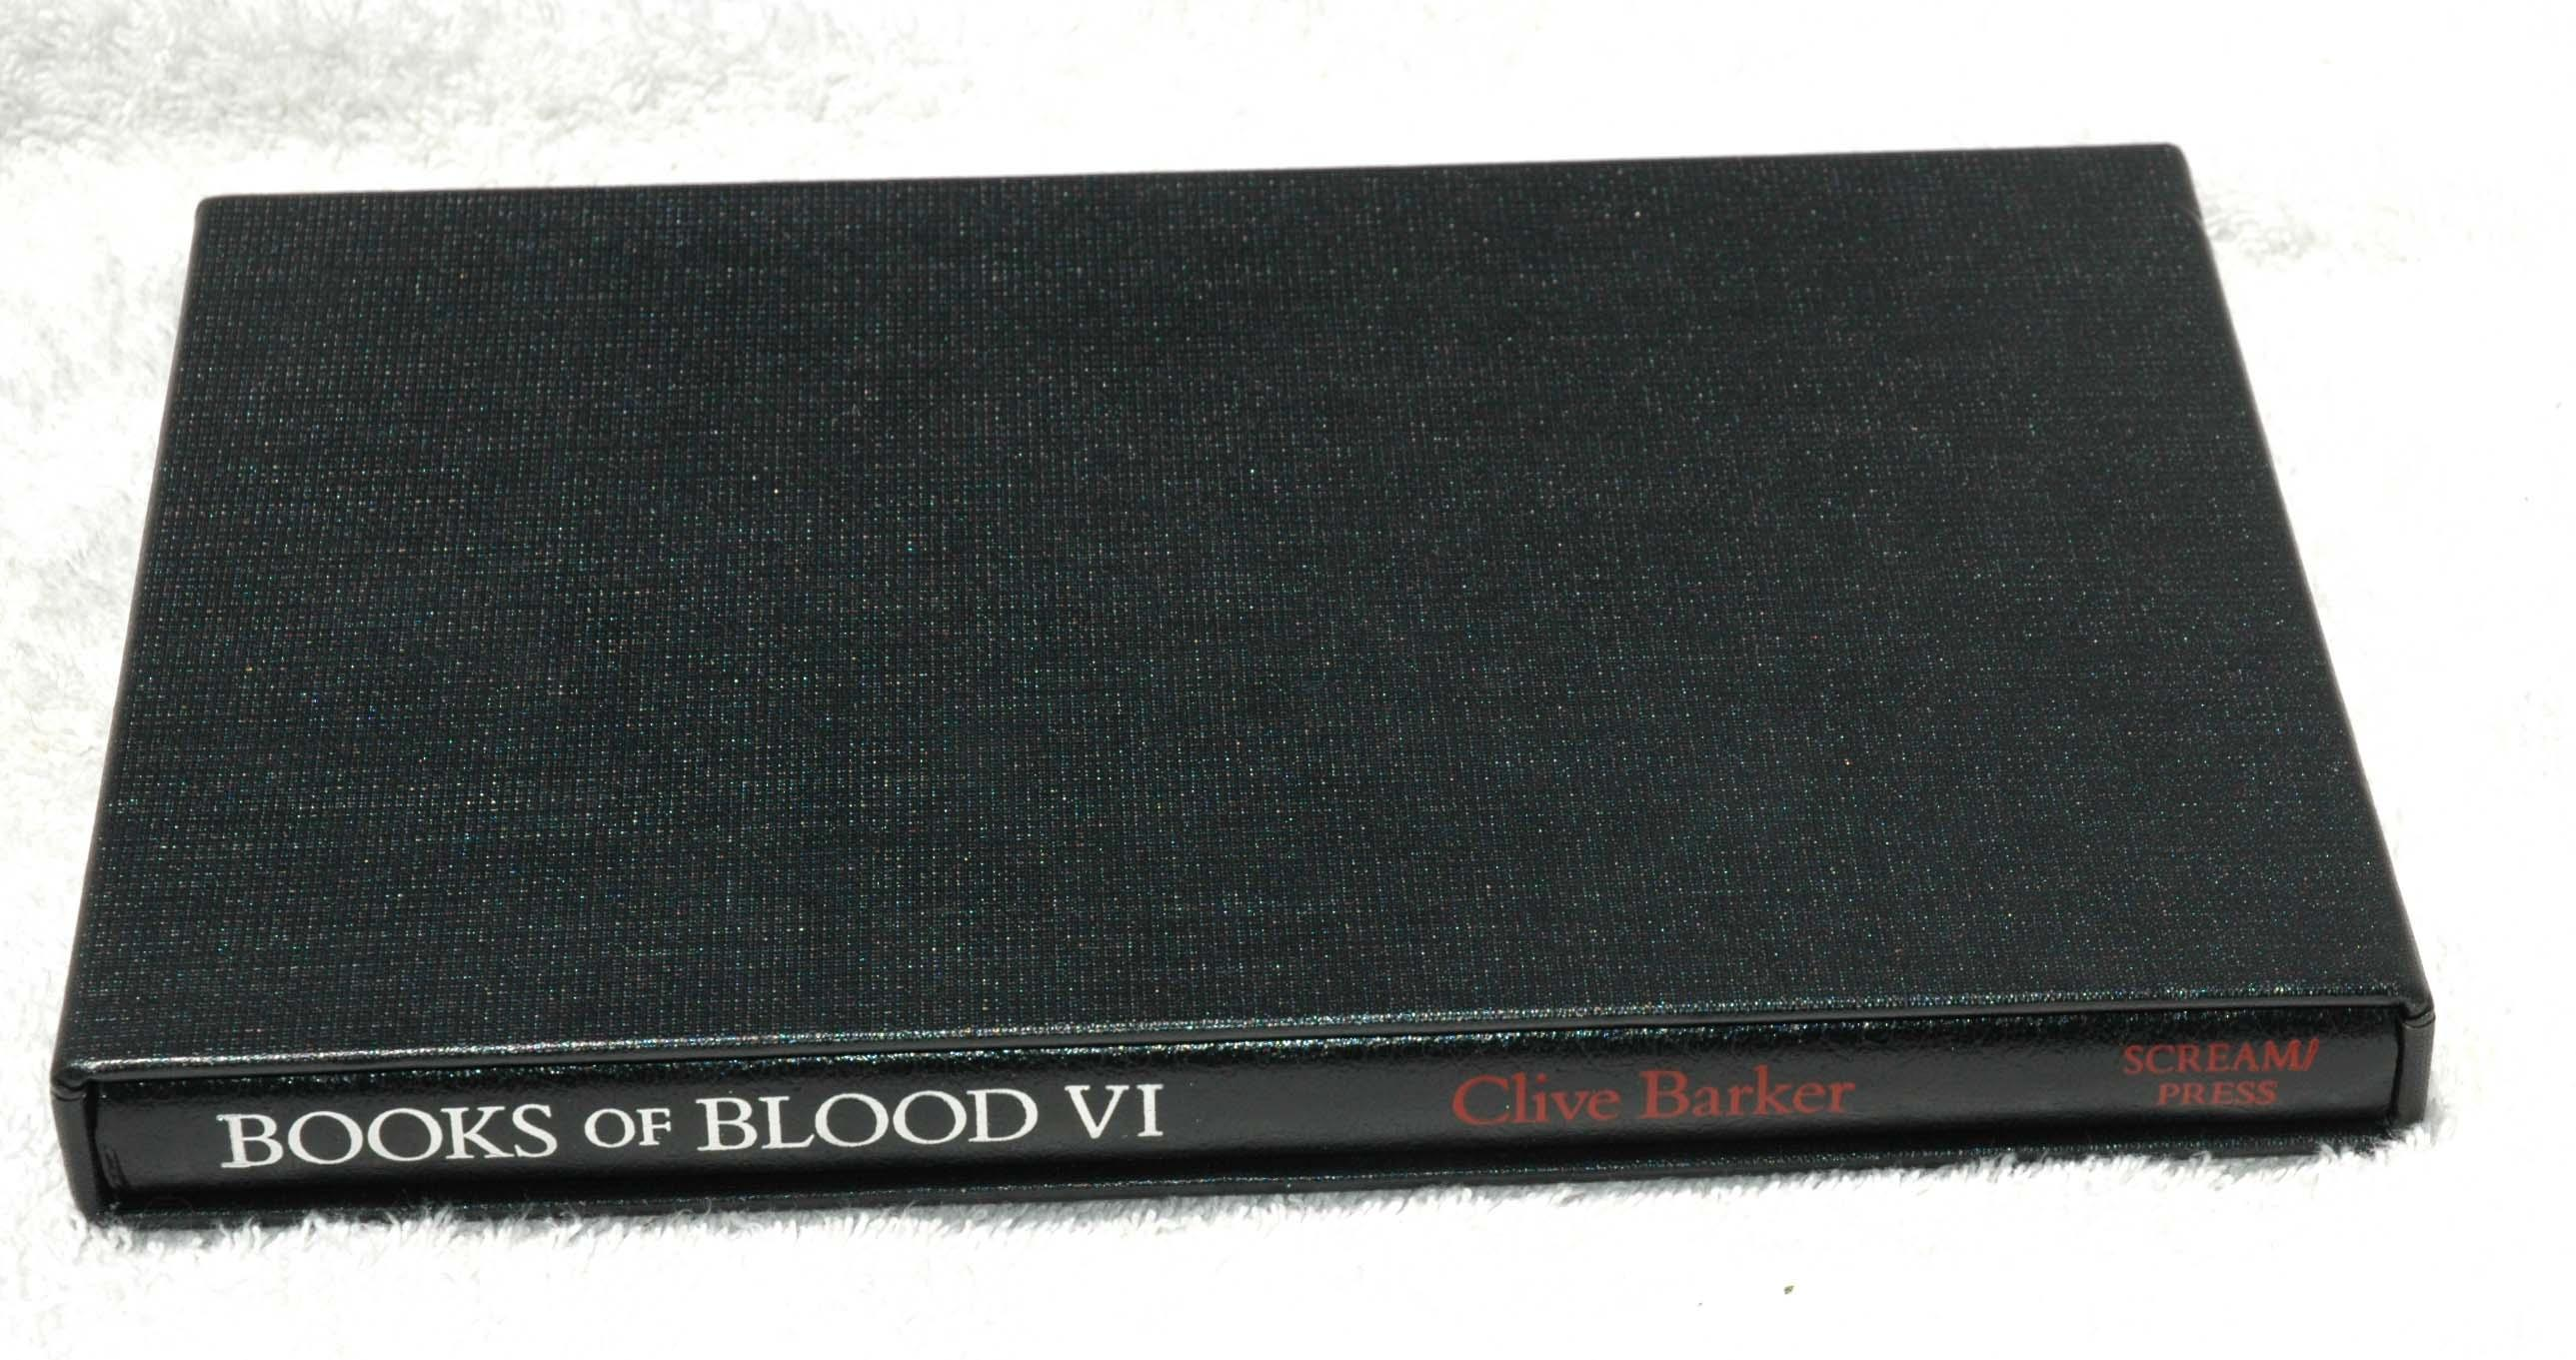 Clive Barker's Books of Blood